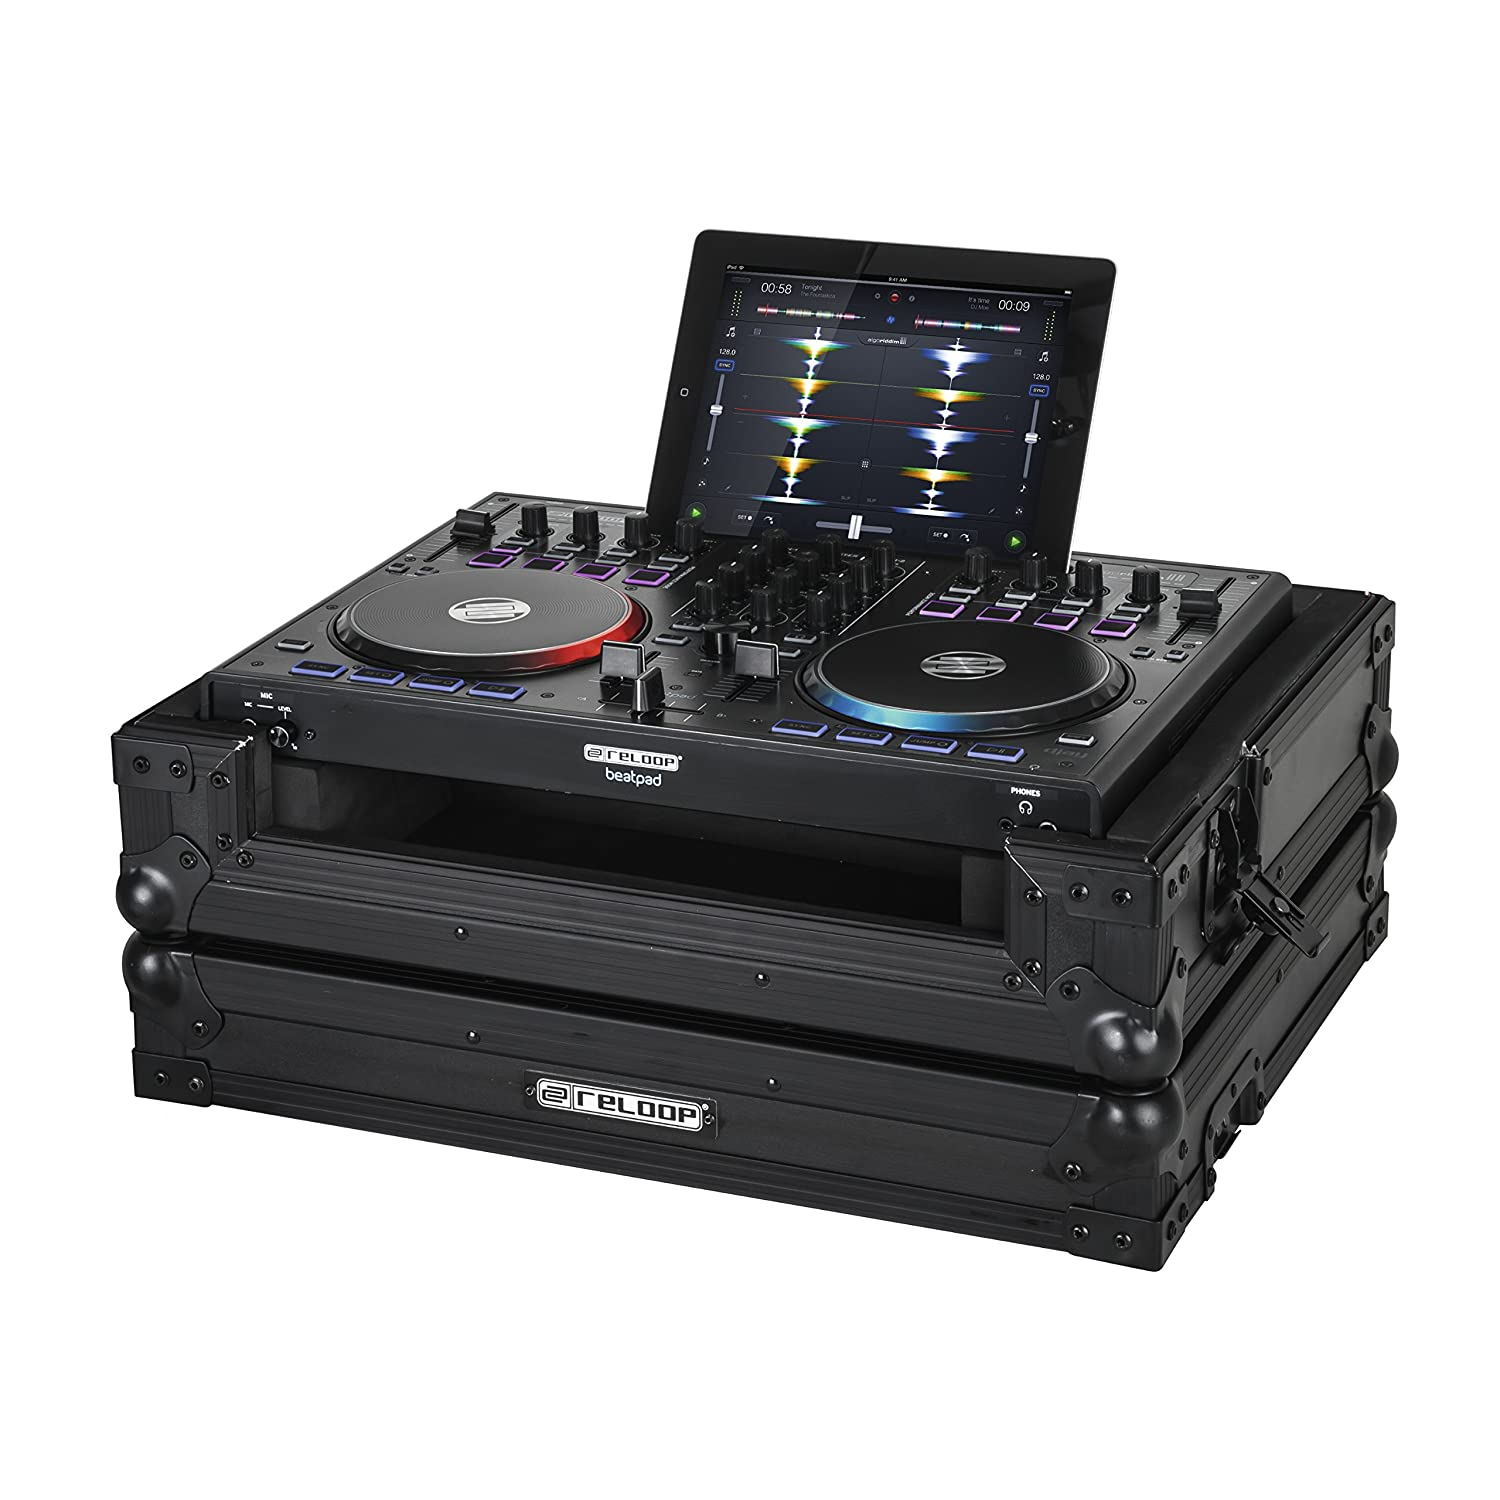 Reloop BEATPAD-CASE Professional DJ Travel Case for Beatpad Controller AMS-BEATPAD-CASE